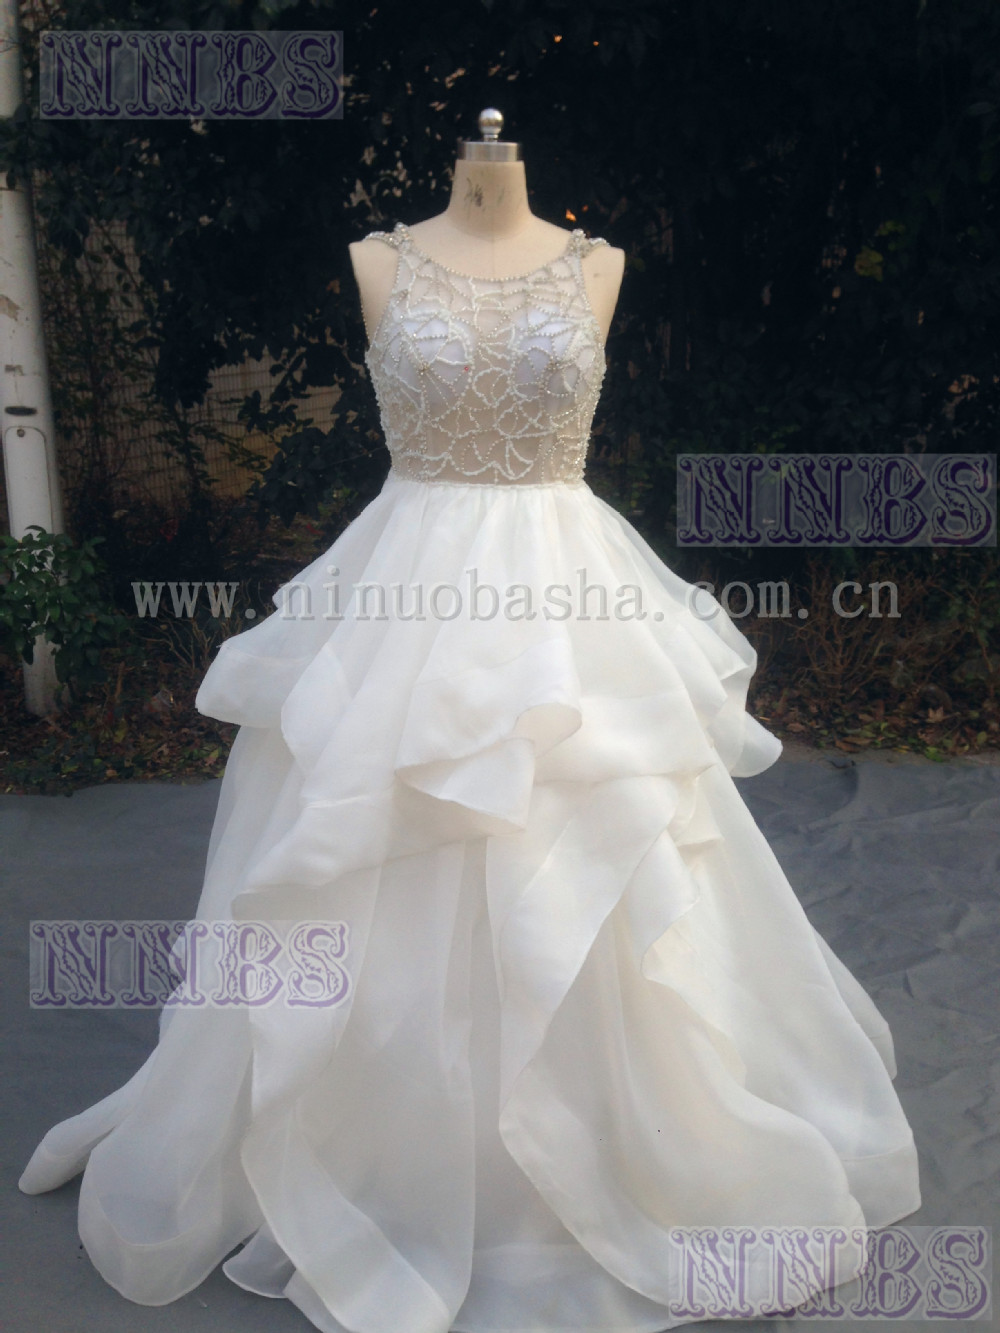 product jewel organza wedding dress with ruffled skirt